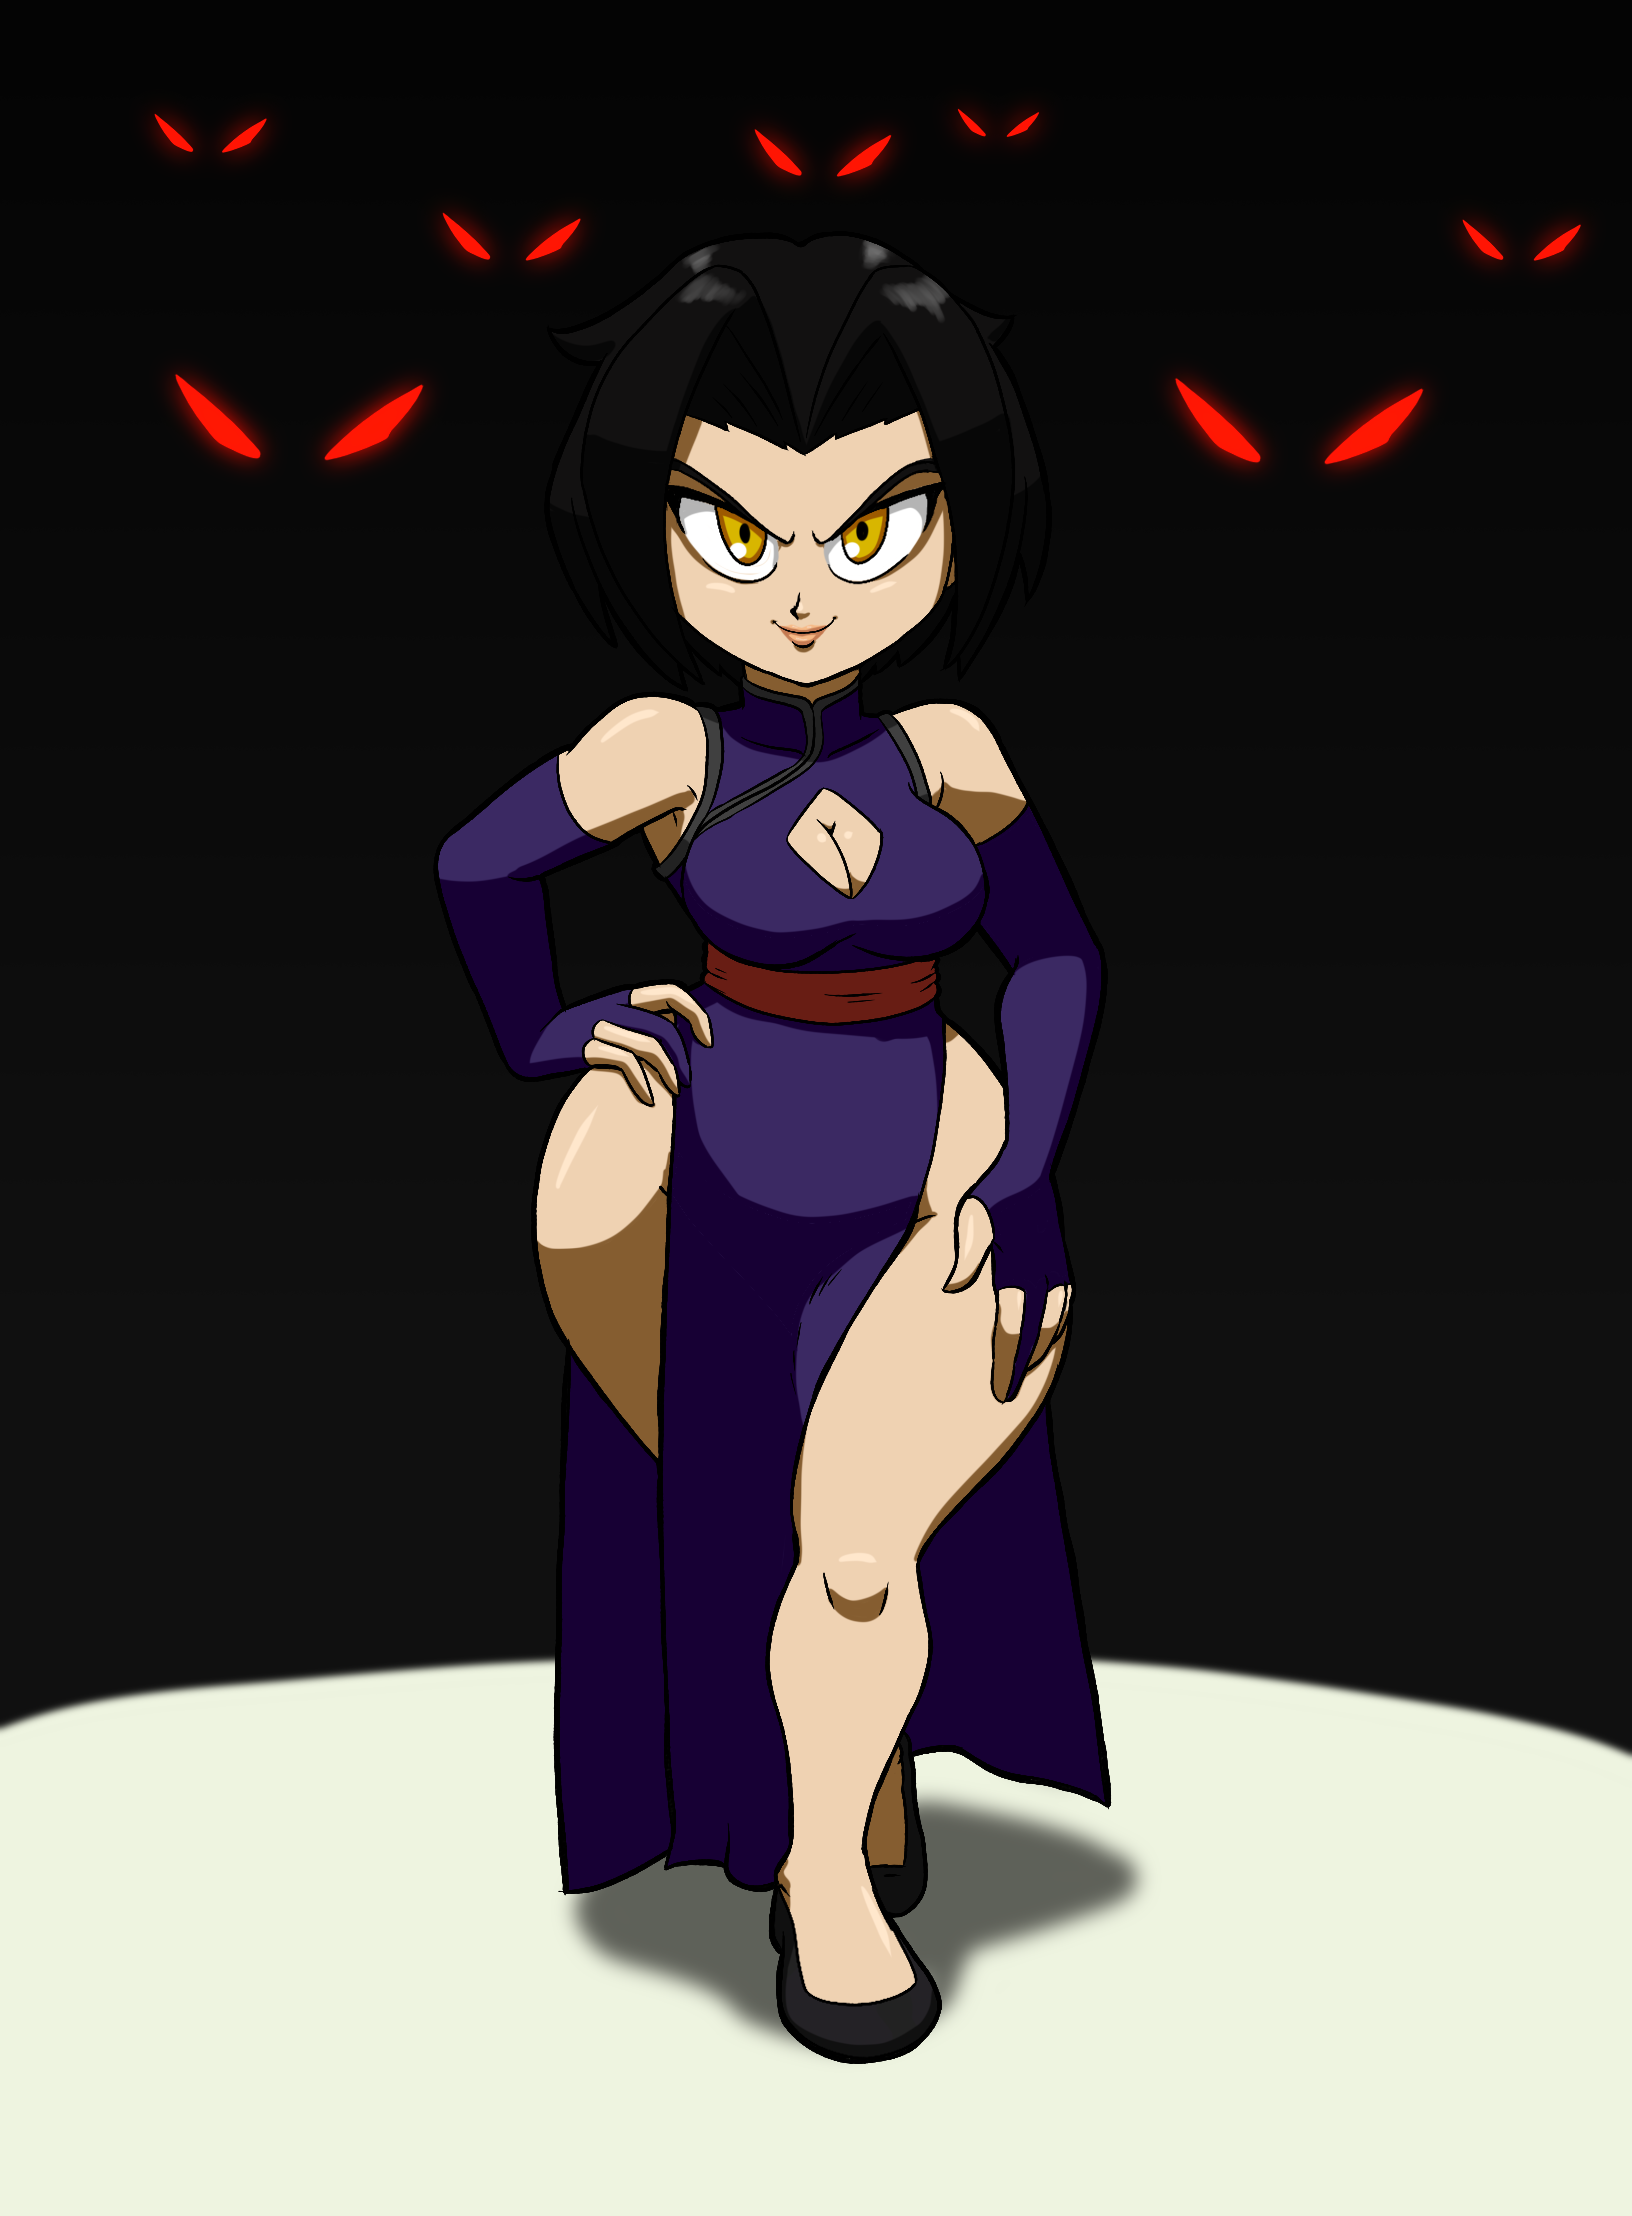 queen of the shadowkhan by tansau on newgrounds